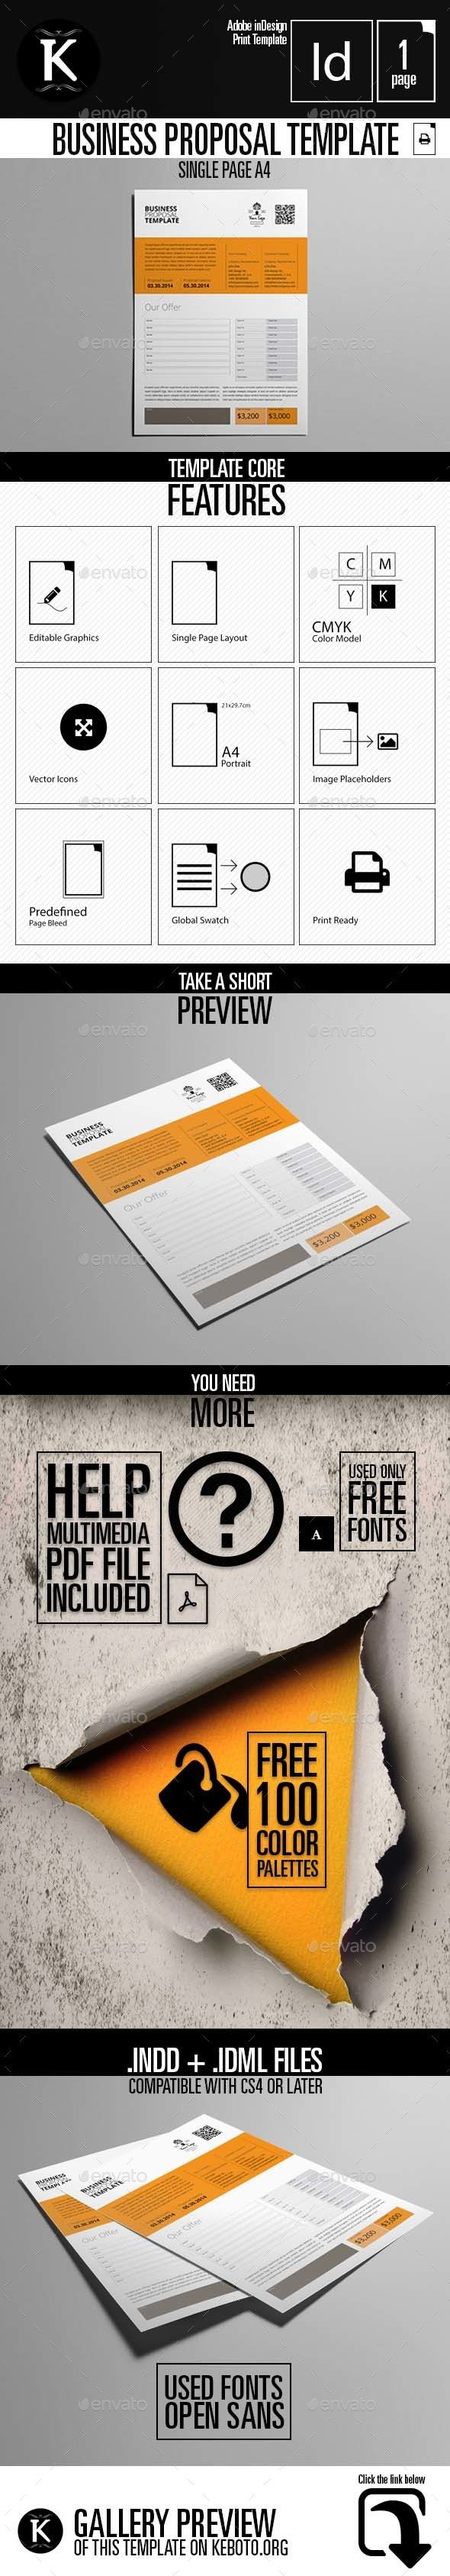 free proposal template%0A Business Proposal Template Single Page A    Proposals  u      Invoices  Stationery Download here